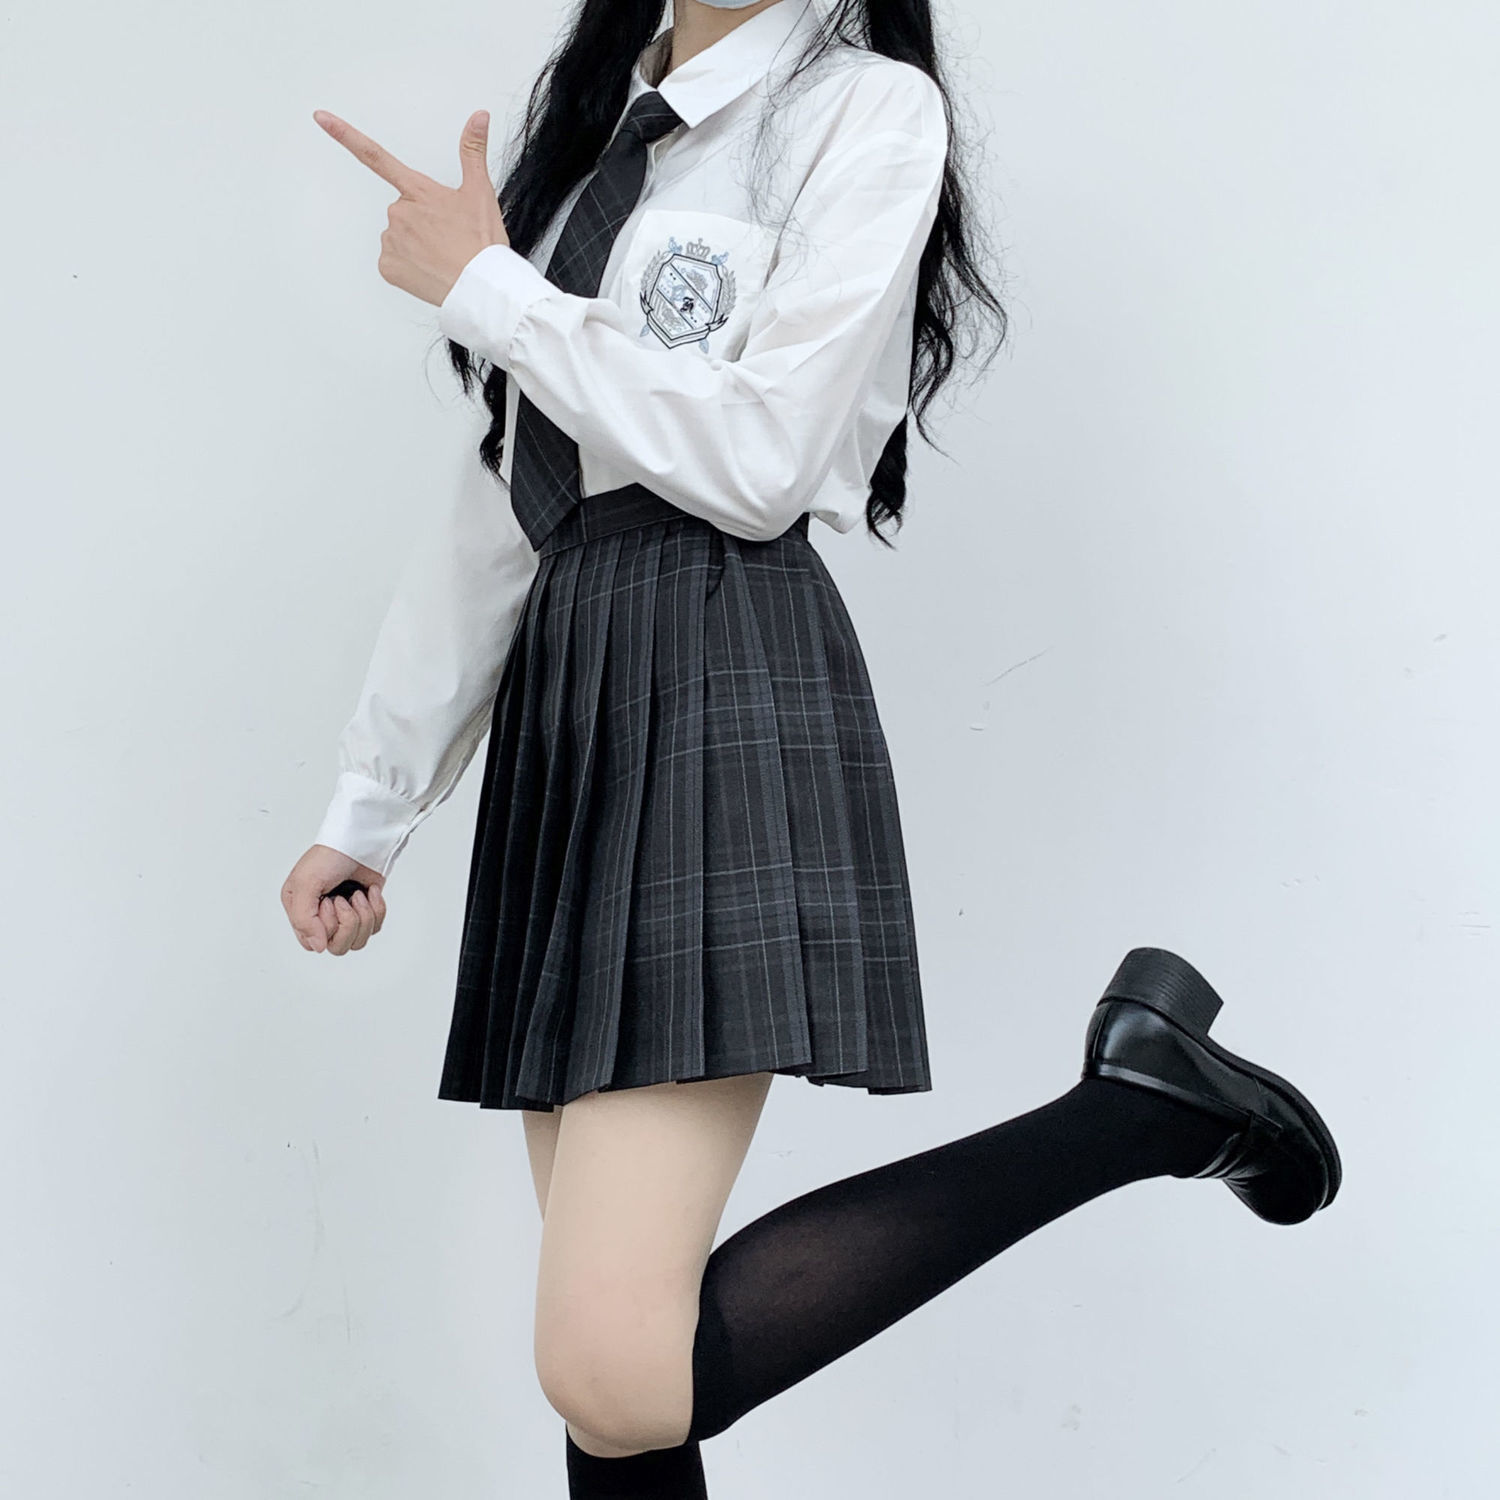 New 2021 Japanese Uniforms Jk Shirts Spring Autumn Preppy School Girls Long Sleeve Embroidered Loose Shirts And Blouses Send Tie